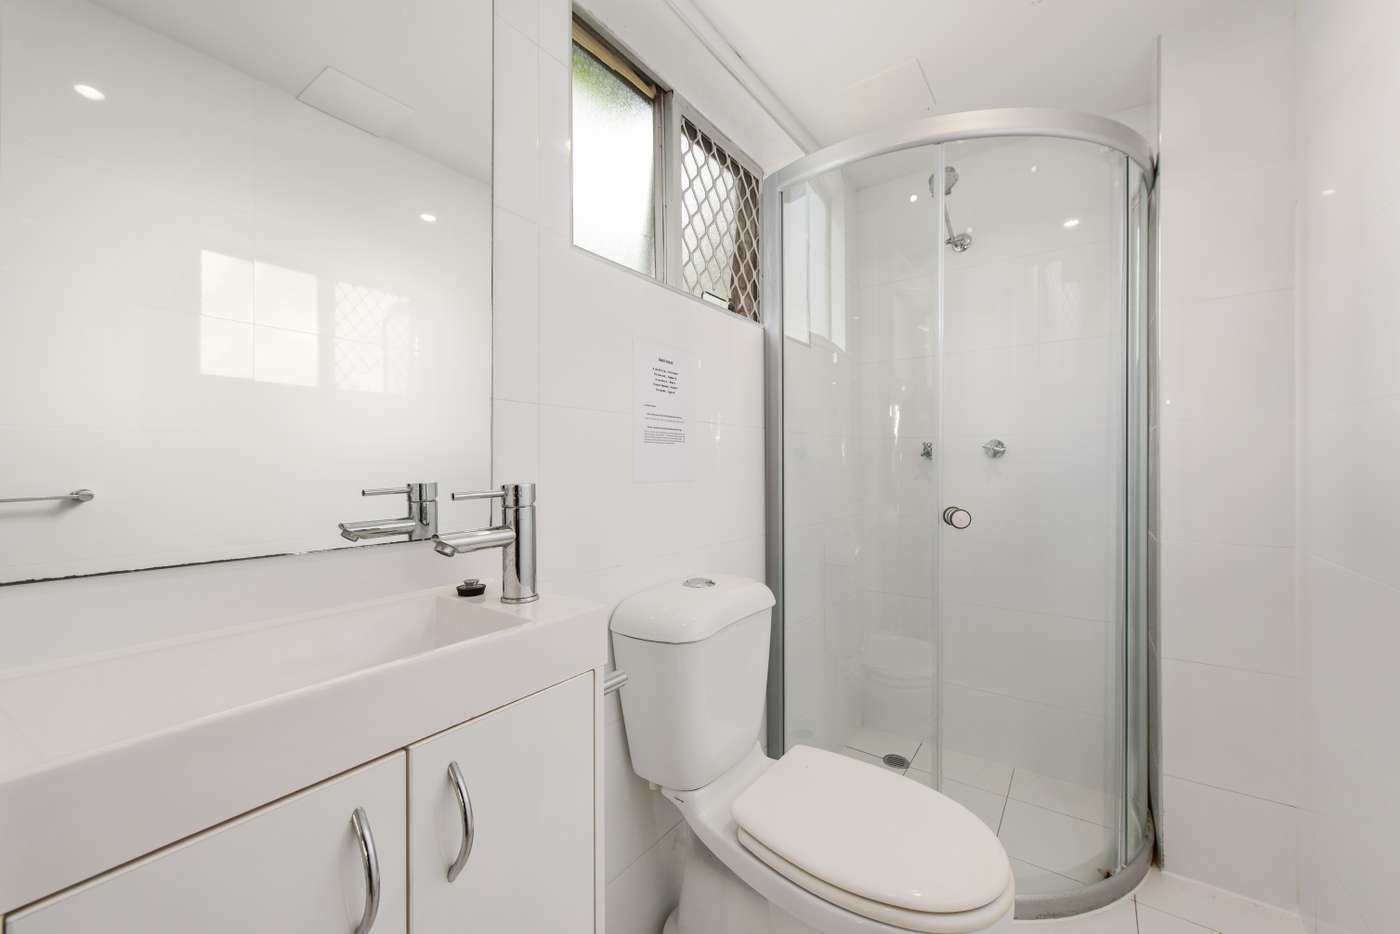 Seventh view of Homely unit listing, 3/11 Munro Street, St Lucia QLD 4067